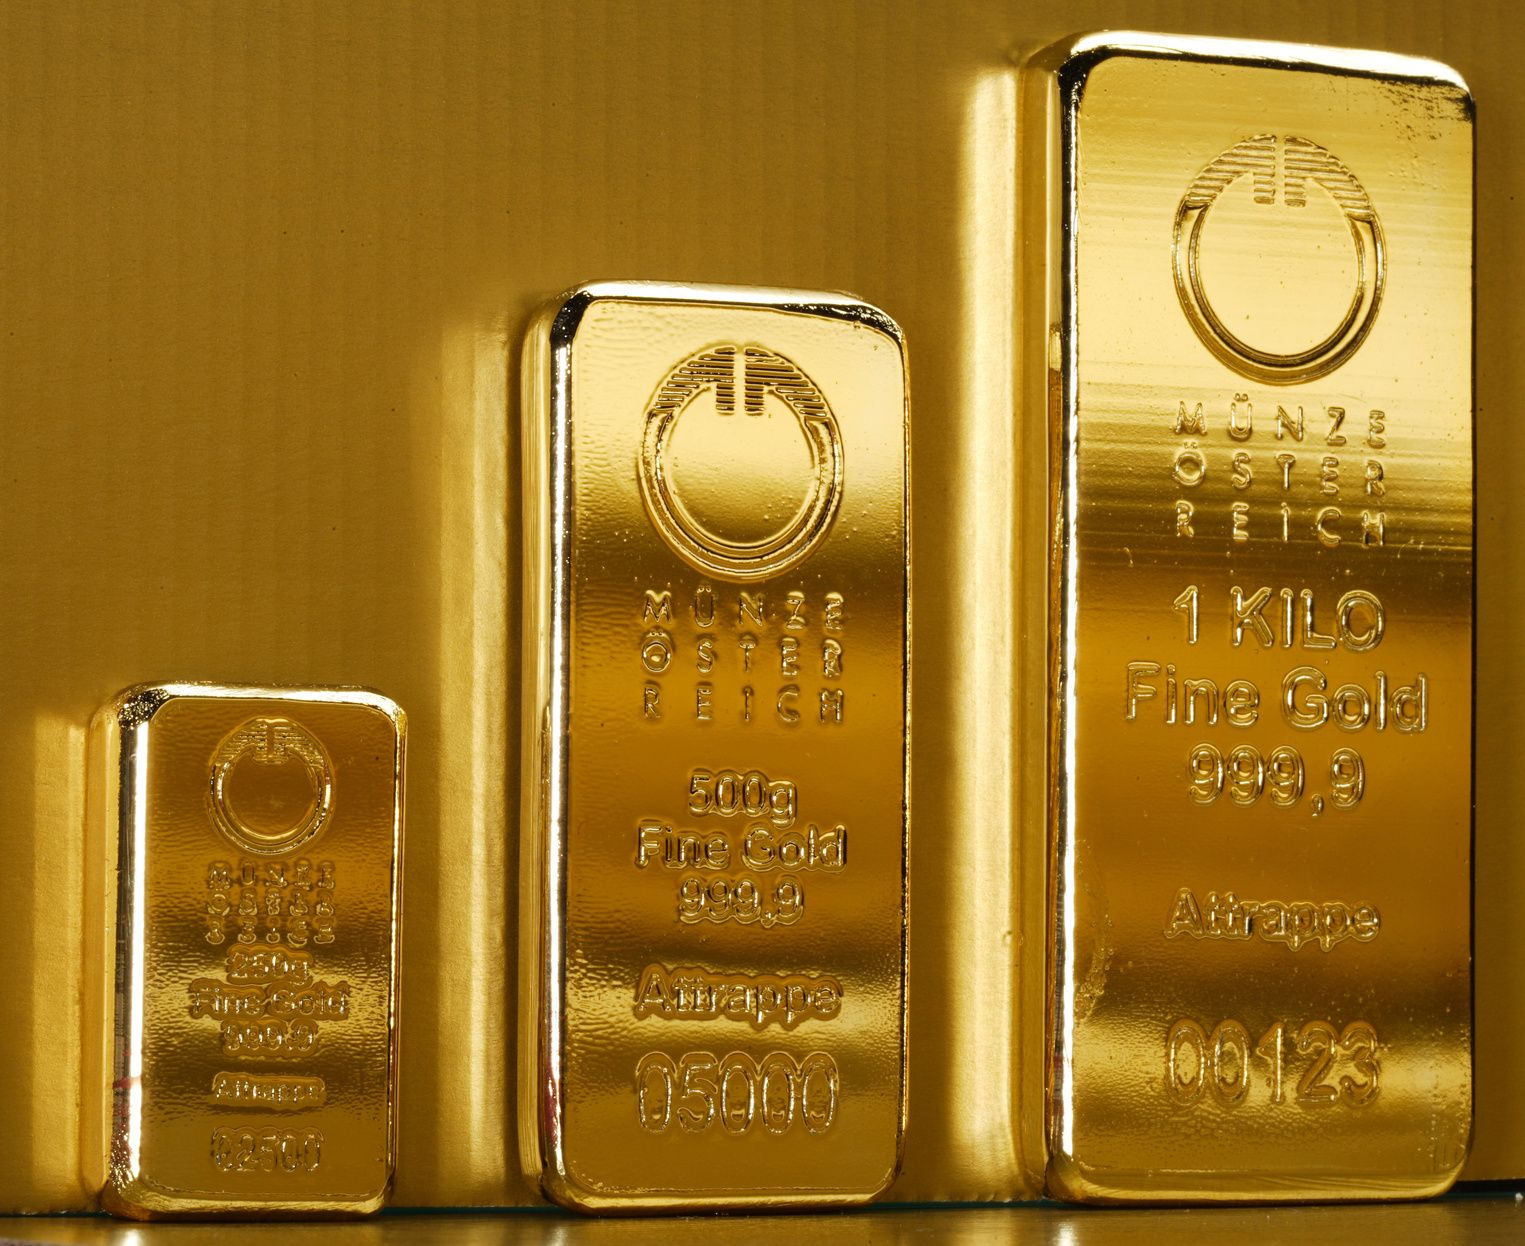 Precious Metals Blog Gold Bullion Coins Gold Bullion Bars Gold Bullion